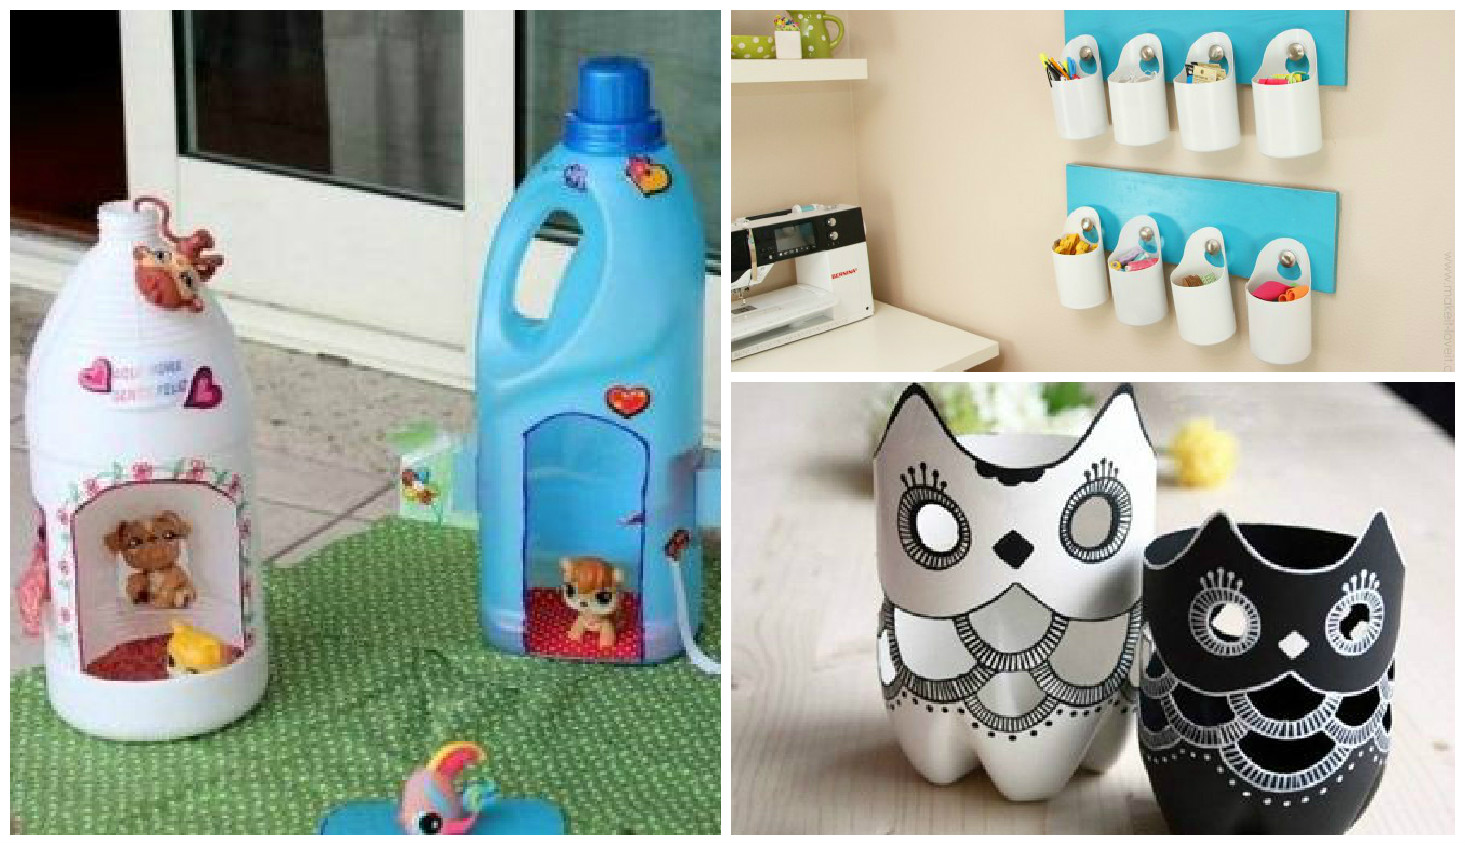 Manualidades ideas fabulosas para reciclar botellas - Reciclar botellas de cristal ...